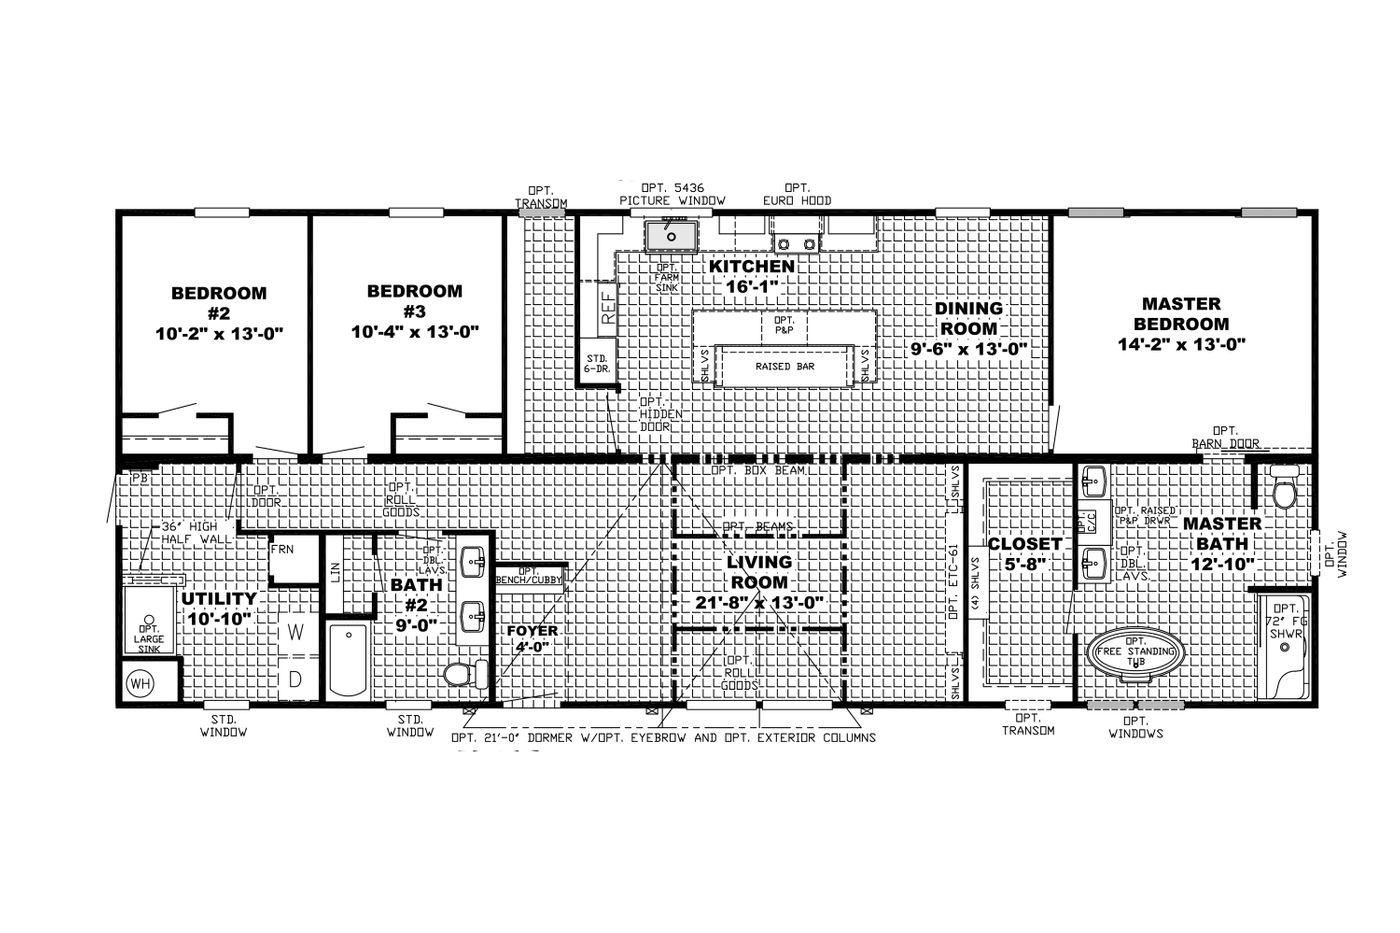 The Shoreline Floorplan